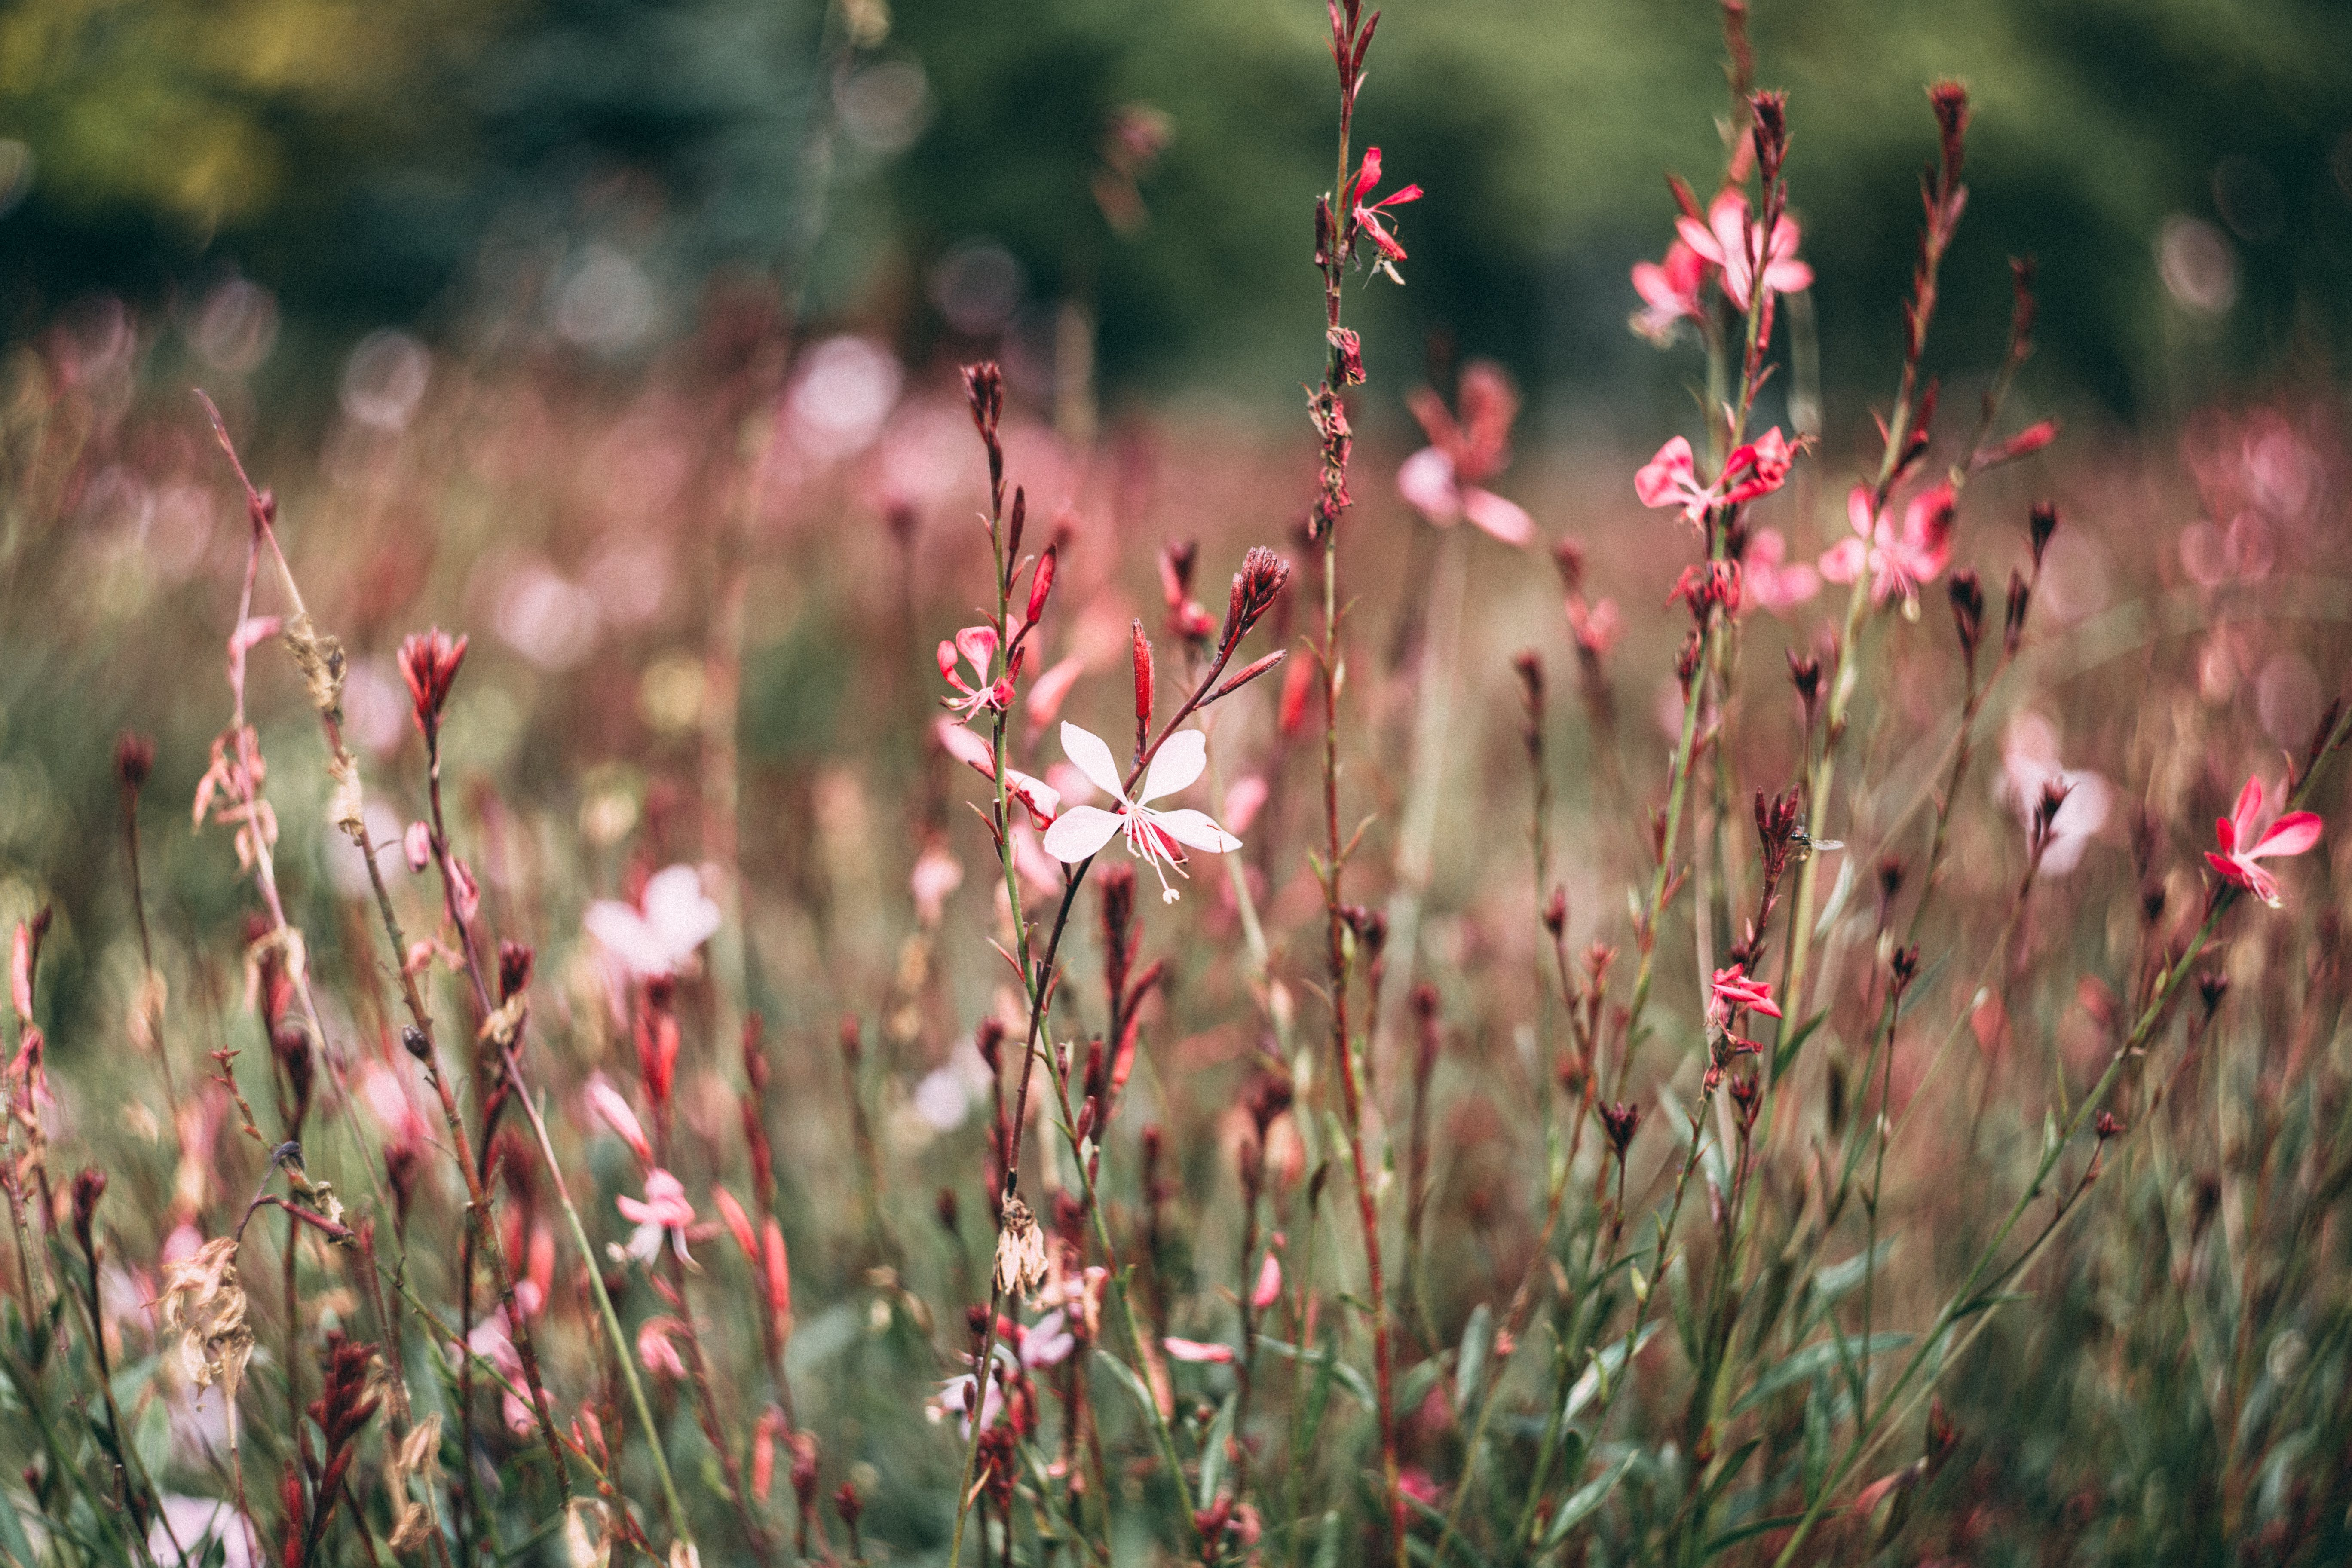 Pink and White Petaled Flower in Closeup Photography at Daytime